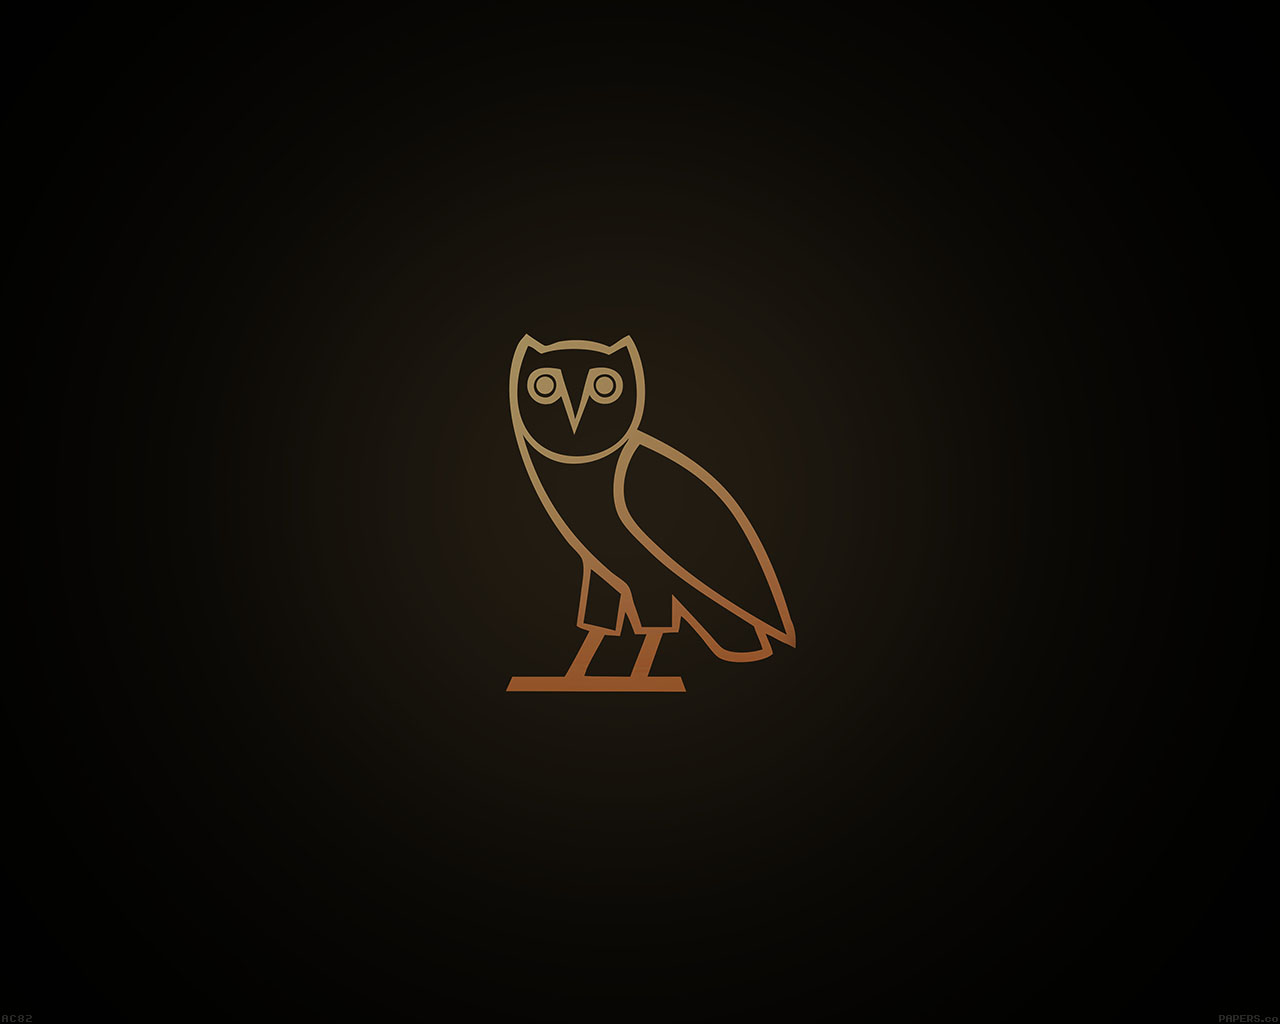 Minimalist Cute Desktop Wallpaper Ac82 Wallpaper Ovo Owl Logo Dark Minimal Papers Co